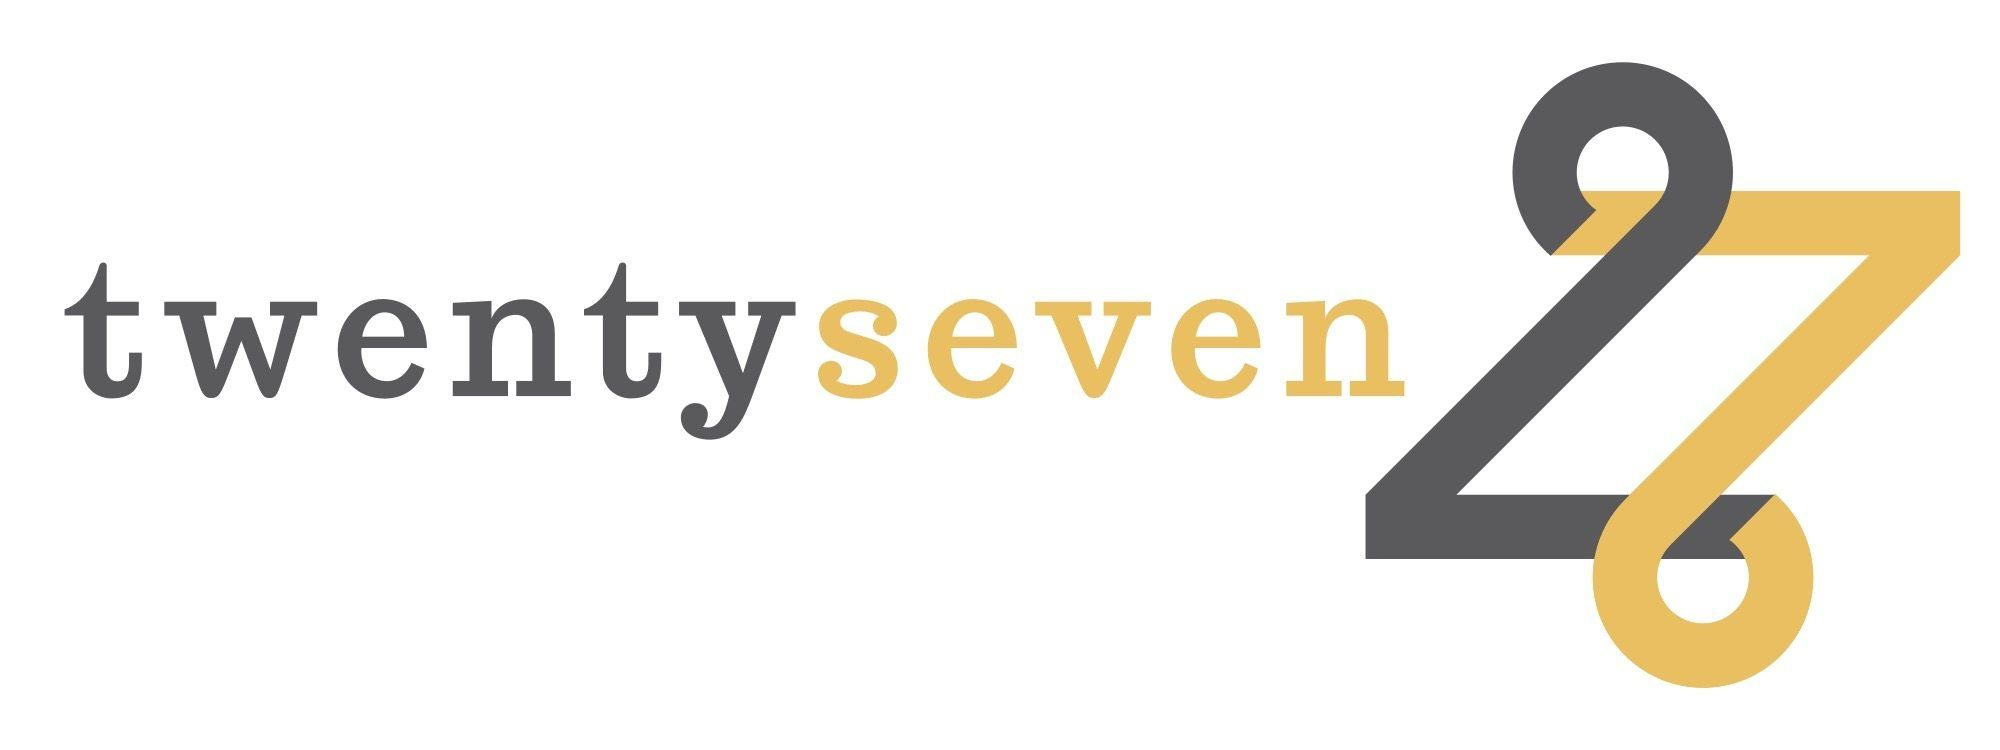 twentyseven_a (2)-fixed